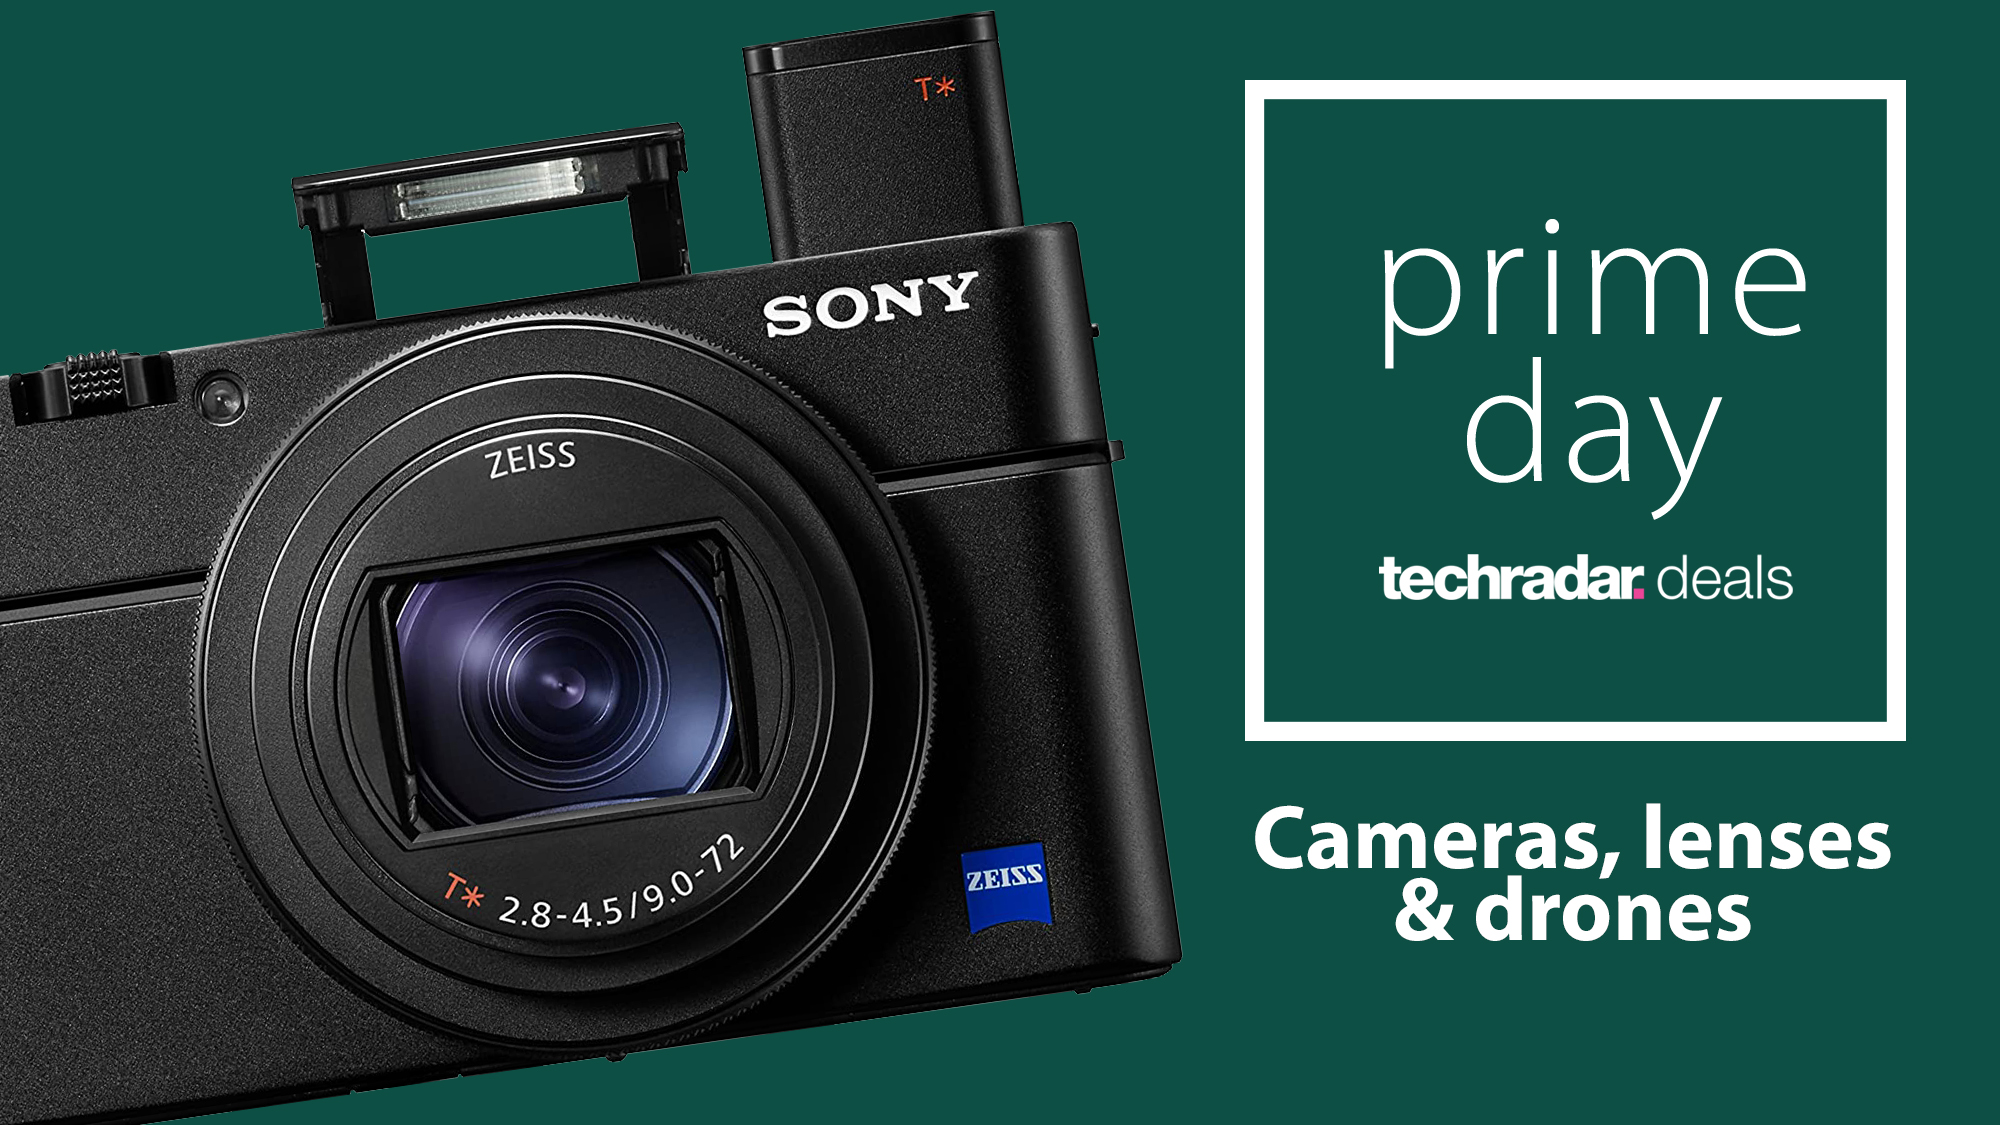 Best Prime Day camera deals 2021: the biggest photographic savings we saw